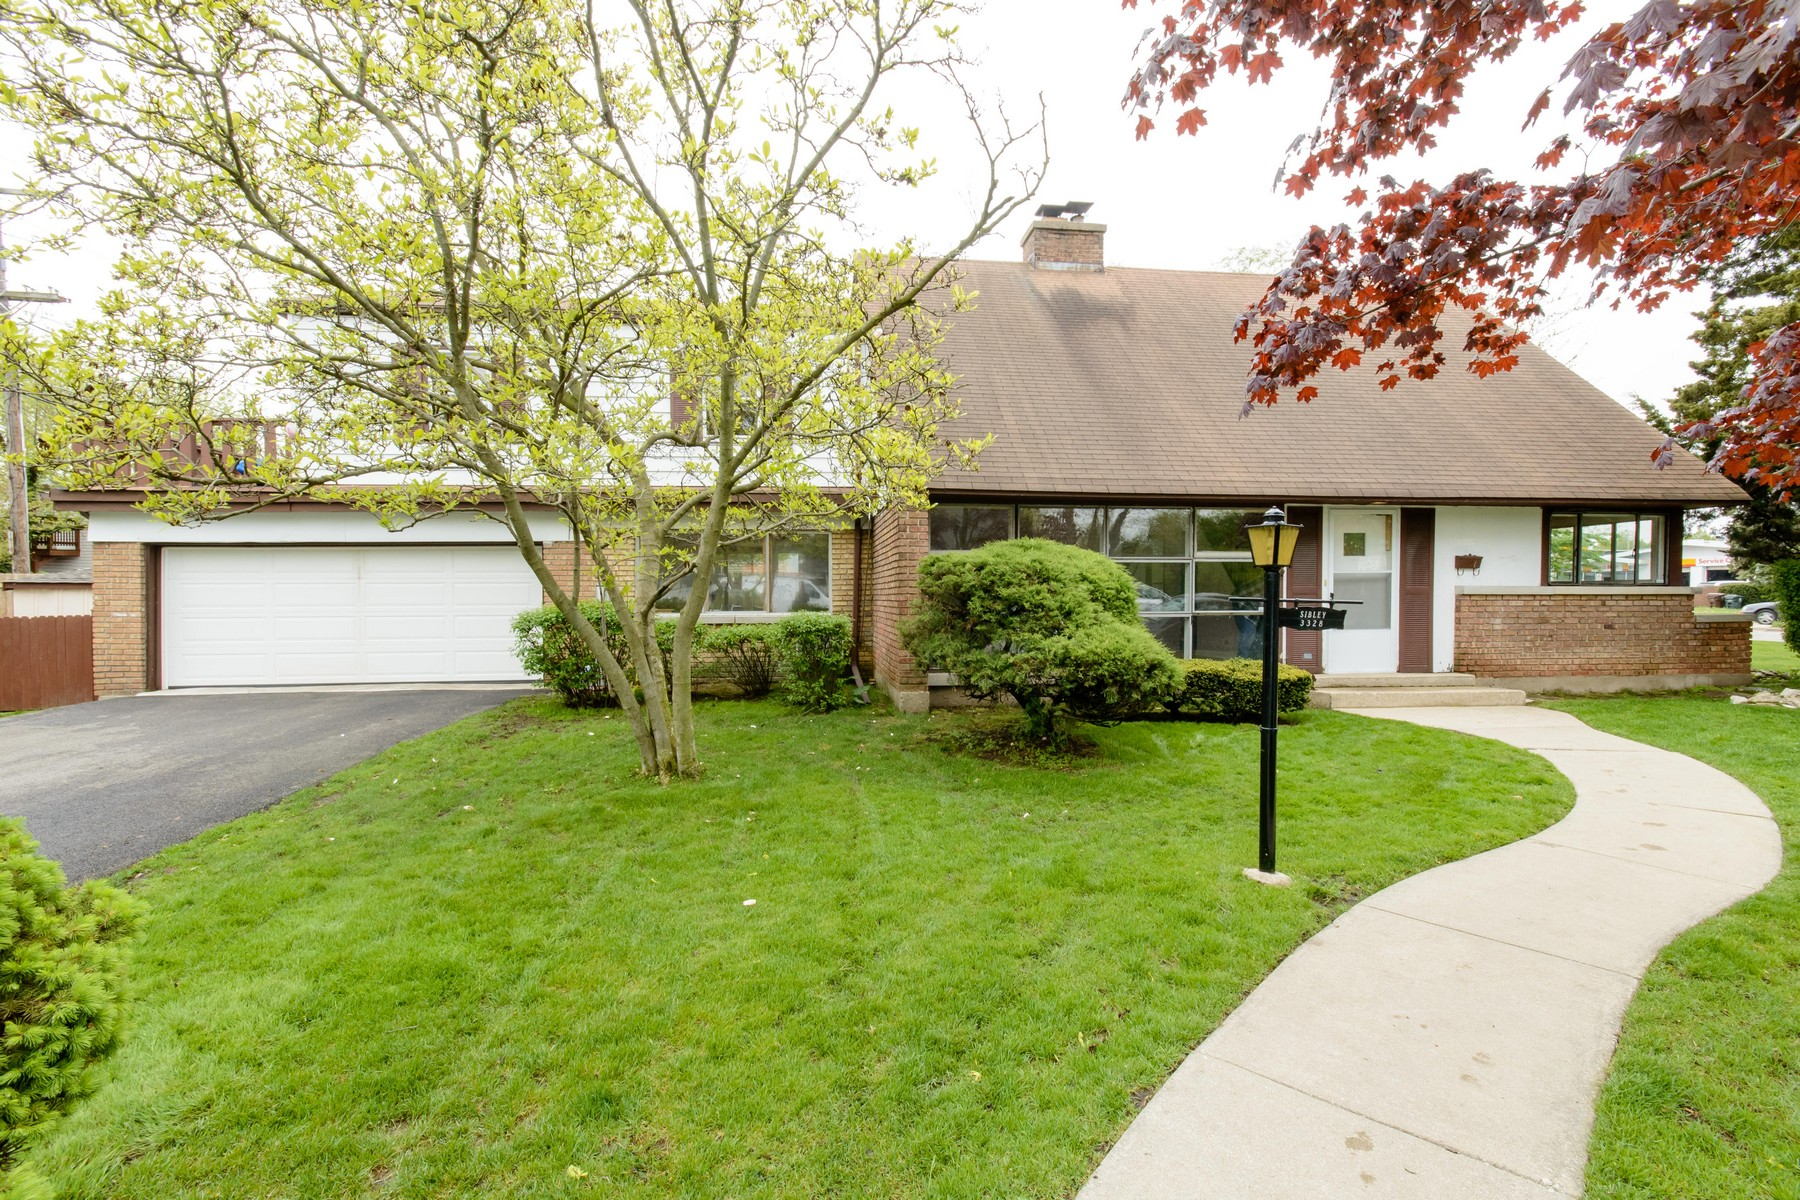 Villa per Vendita alle ore Fantastic Rehab Opportunity In Willard School District 3328 Payne Street Evanston, Illinois, 60201 Stati Uniti